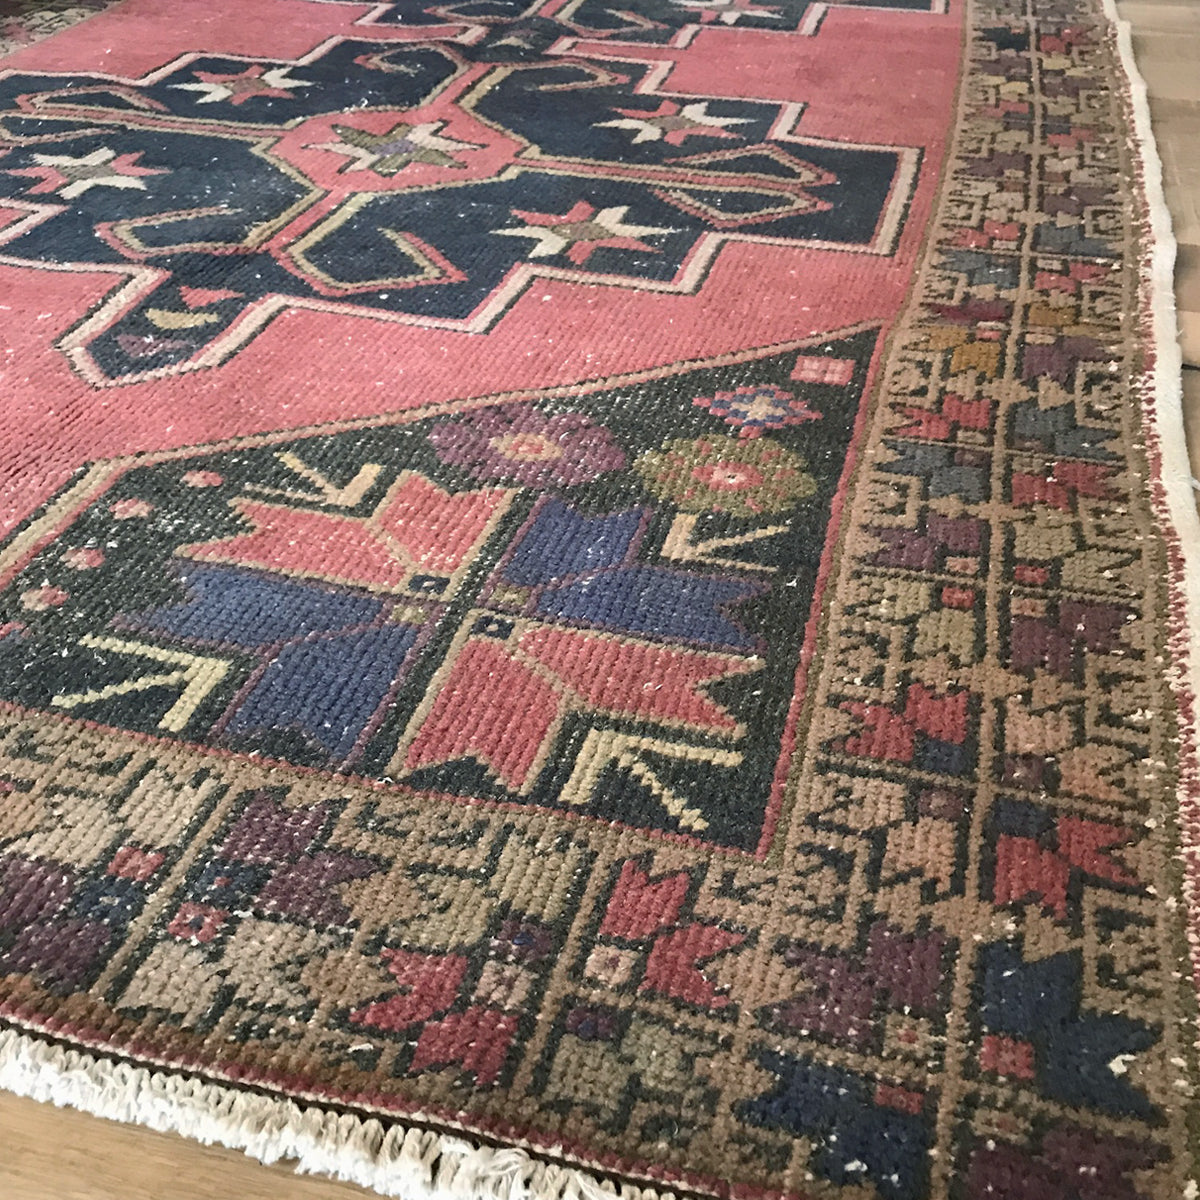 This handwoven vintage Turkish rug has salmon, pink, olive, and purple colors, and it is a great size! 53x100 inches.